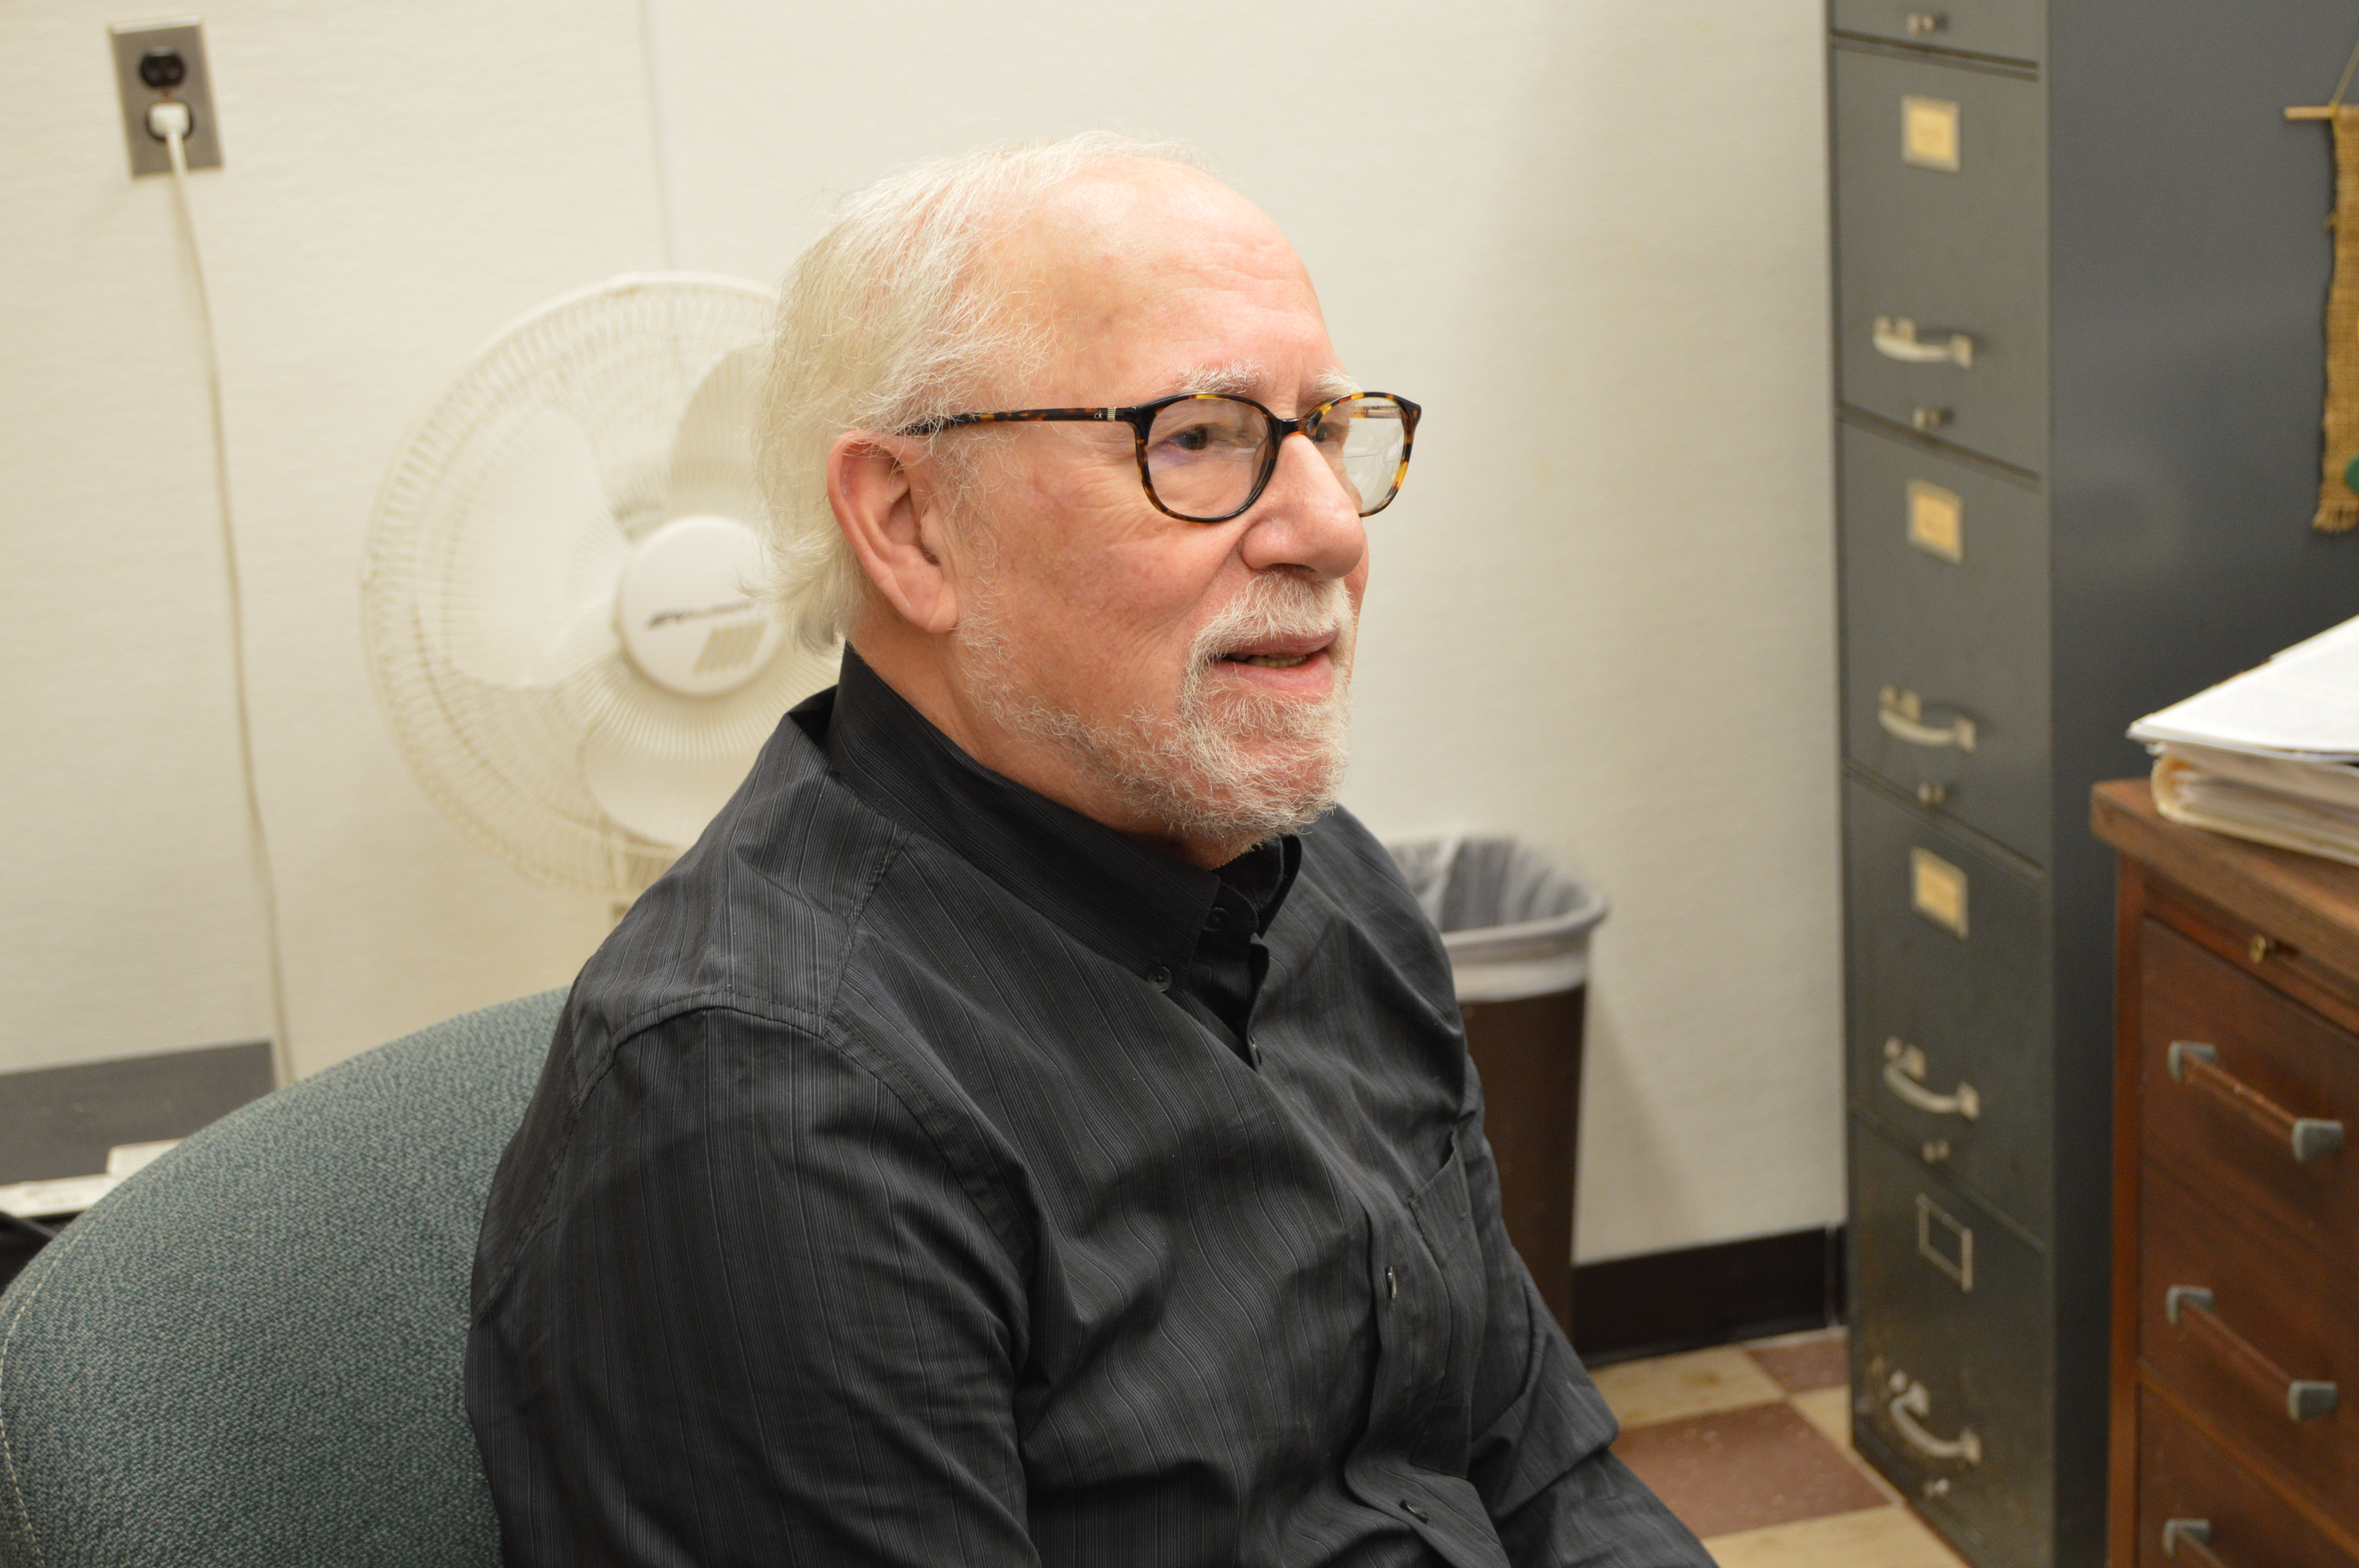 Professor Gerald Lachter, Chairperson of the Psychology Department